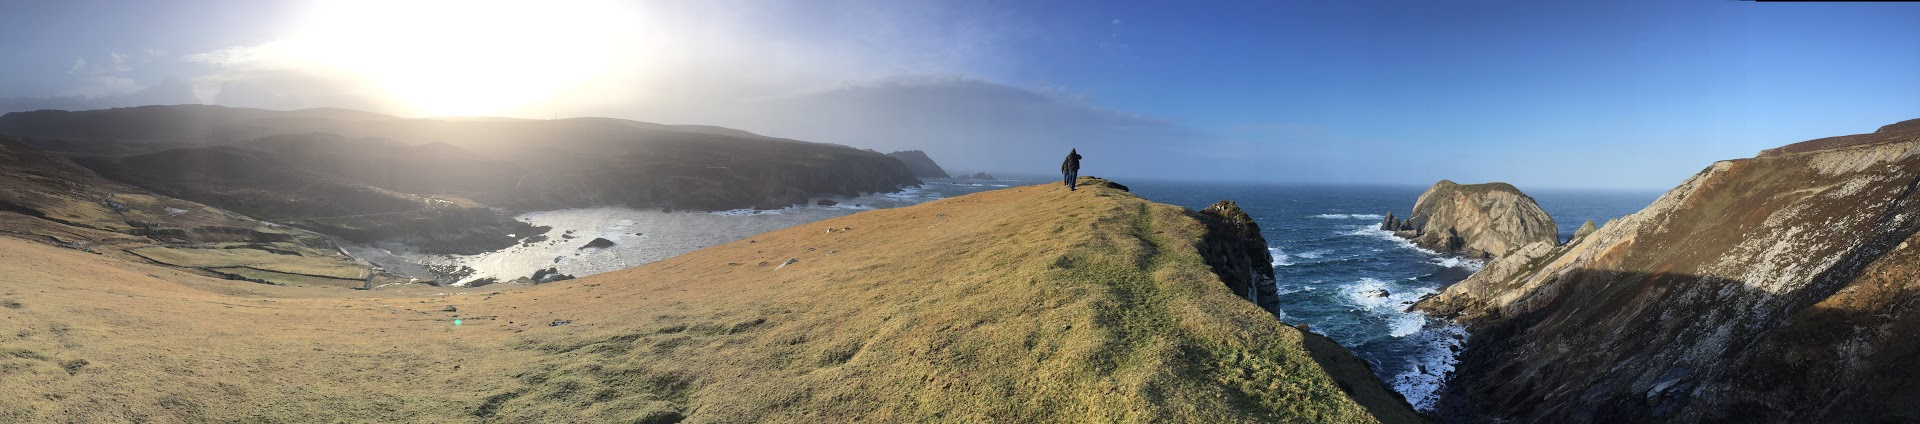 A scenic panoramic photo of a hillside dropping into the ocean at Port in Donegal